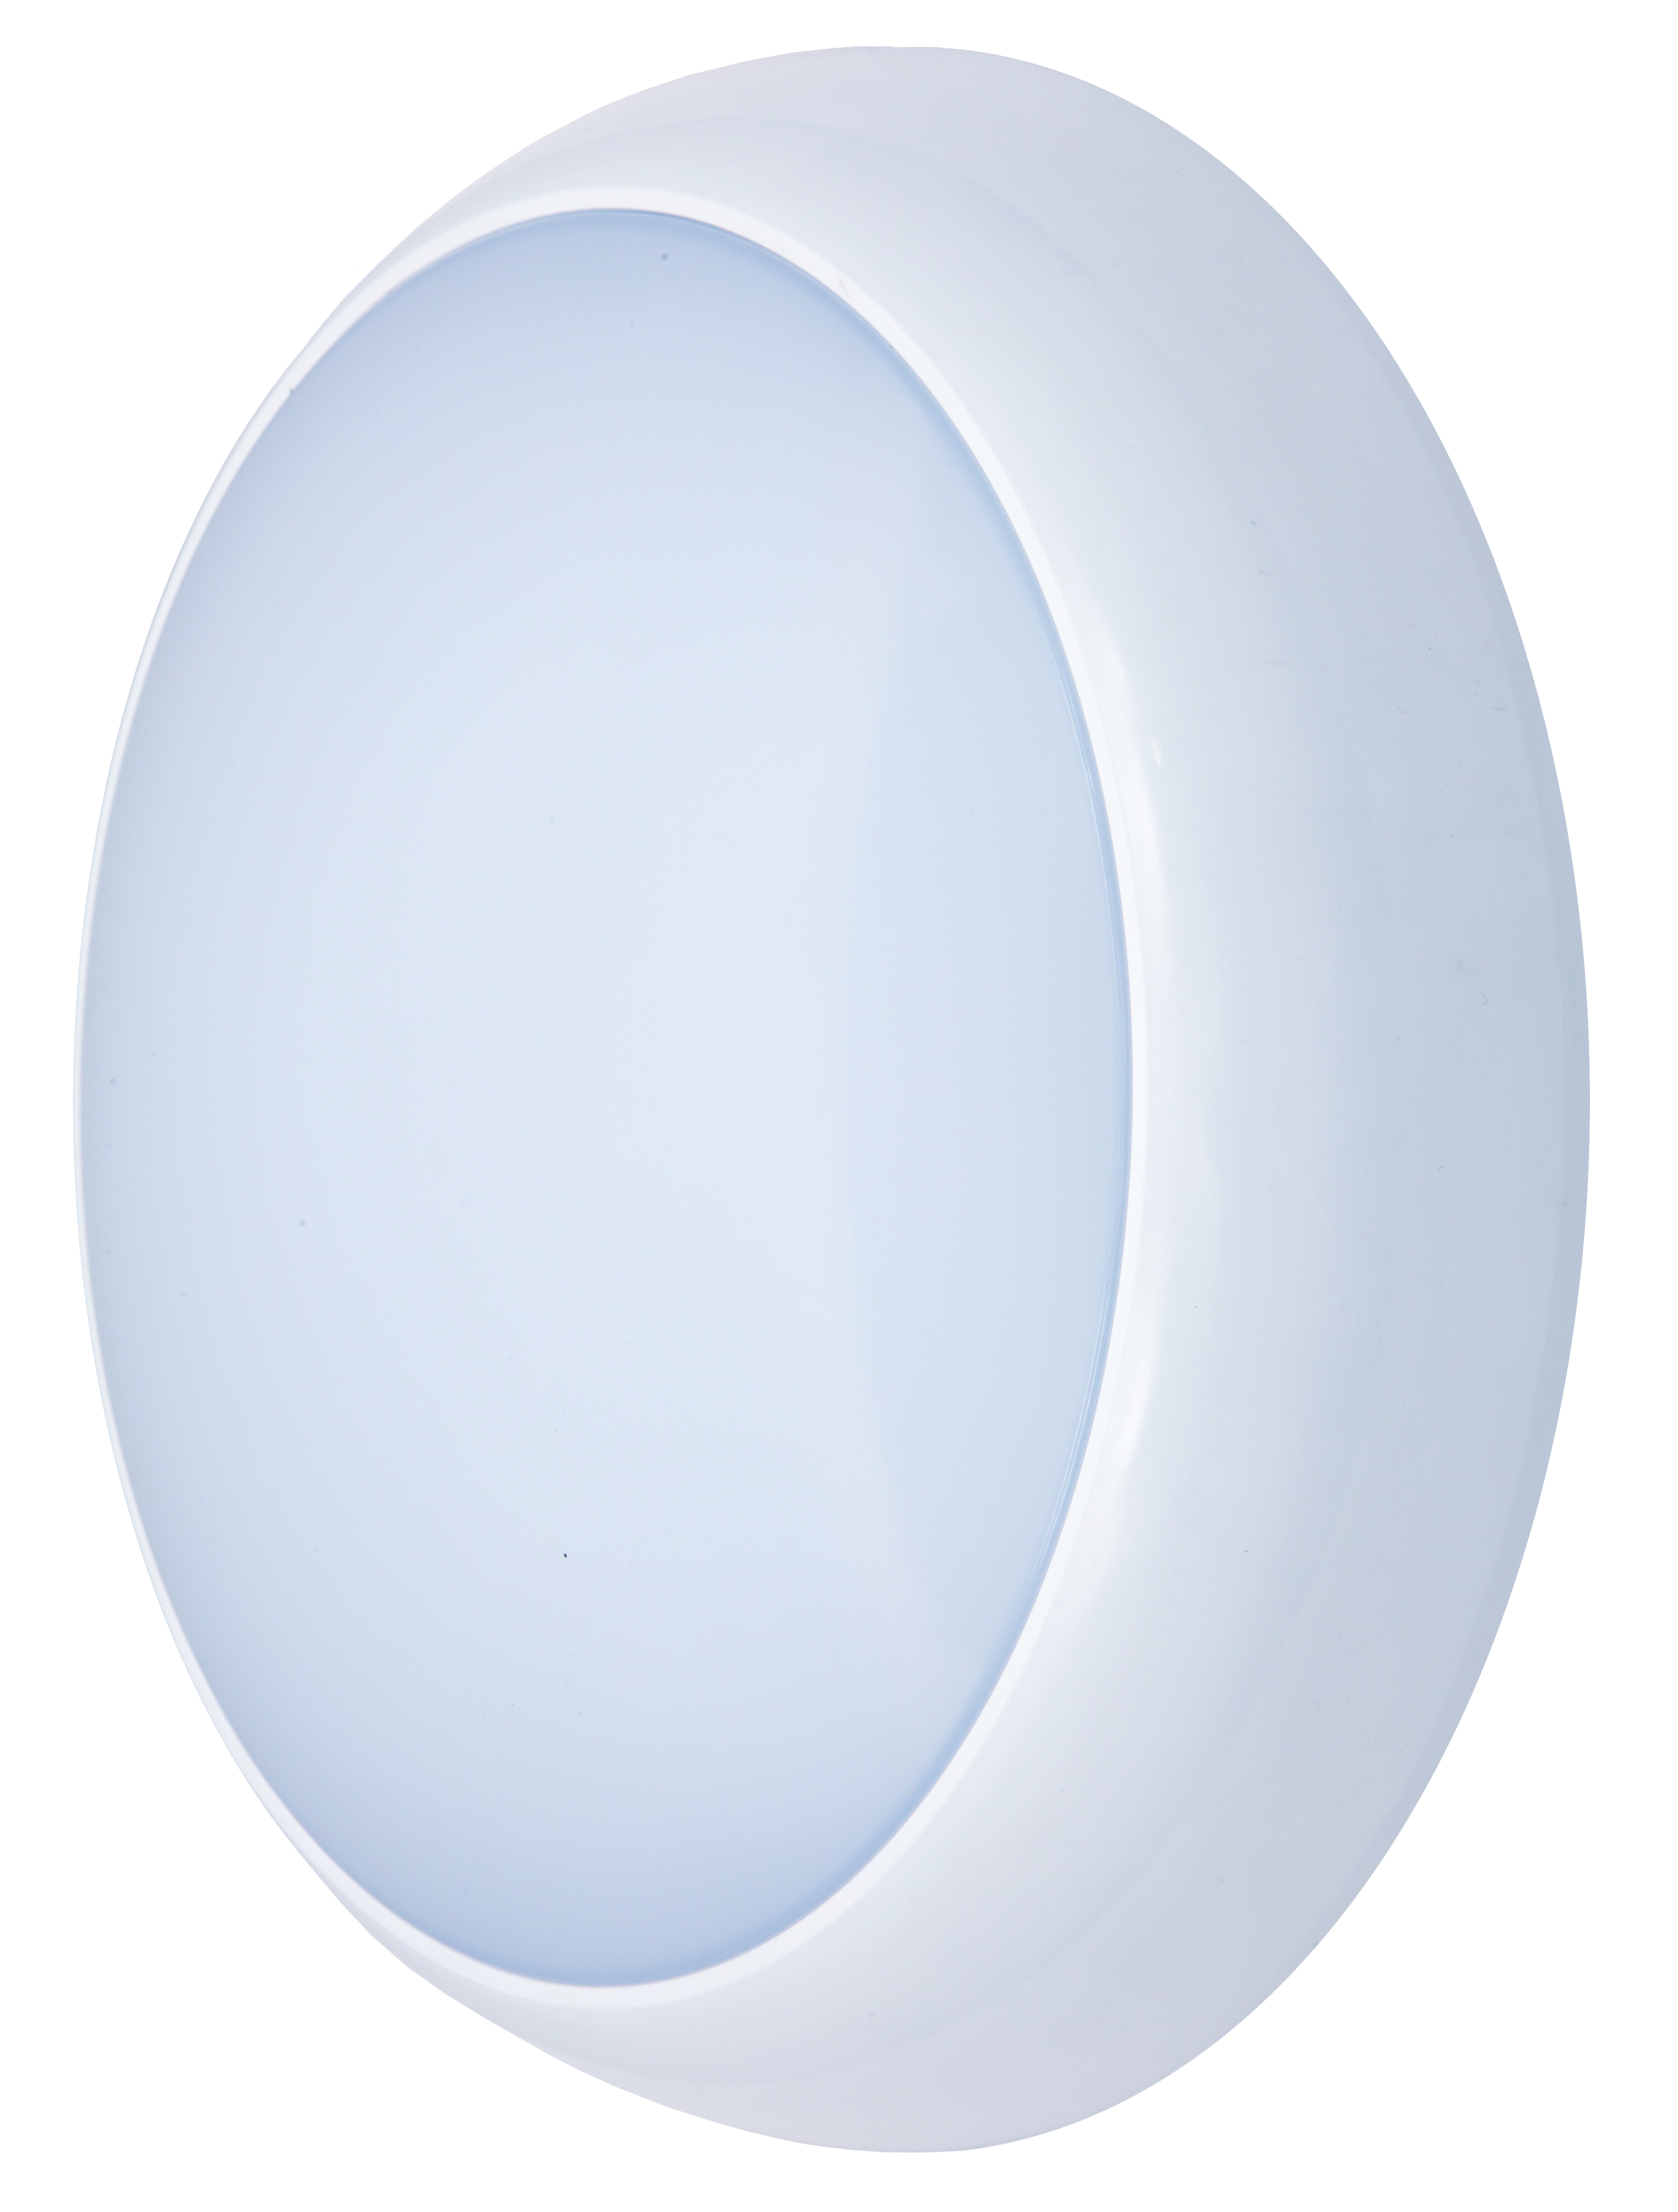 REELTECH LED IP54 Curved Round Bulkhead